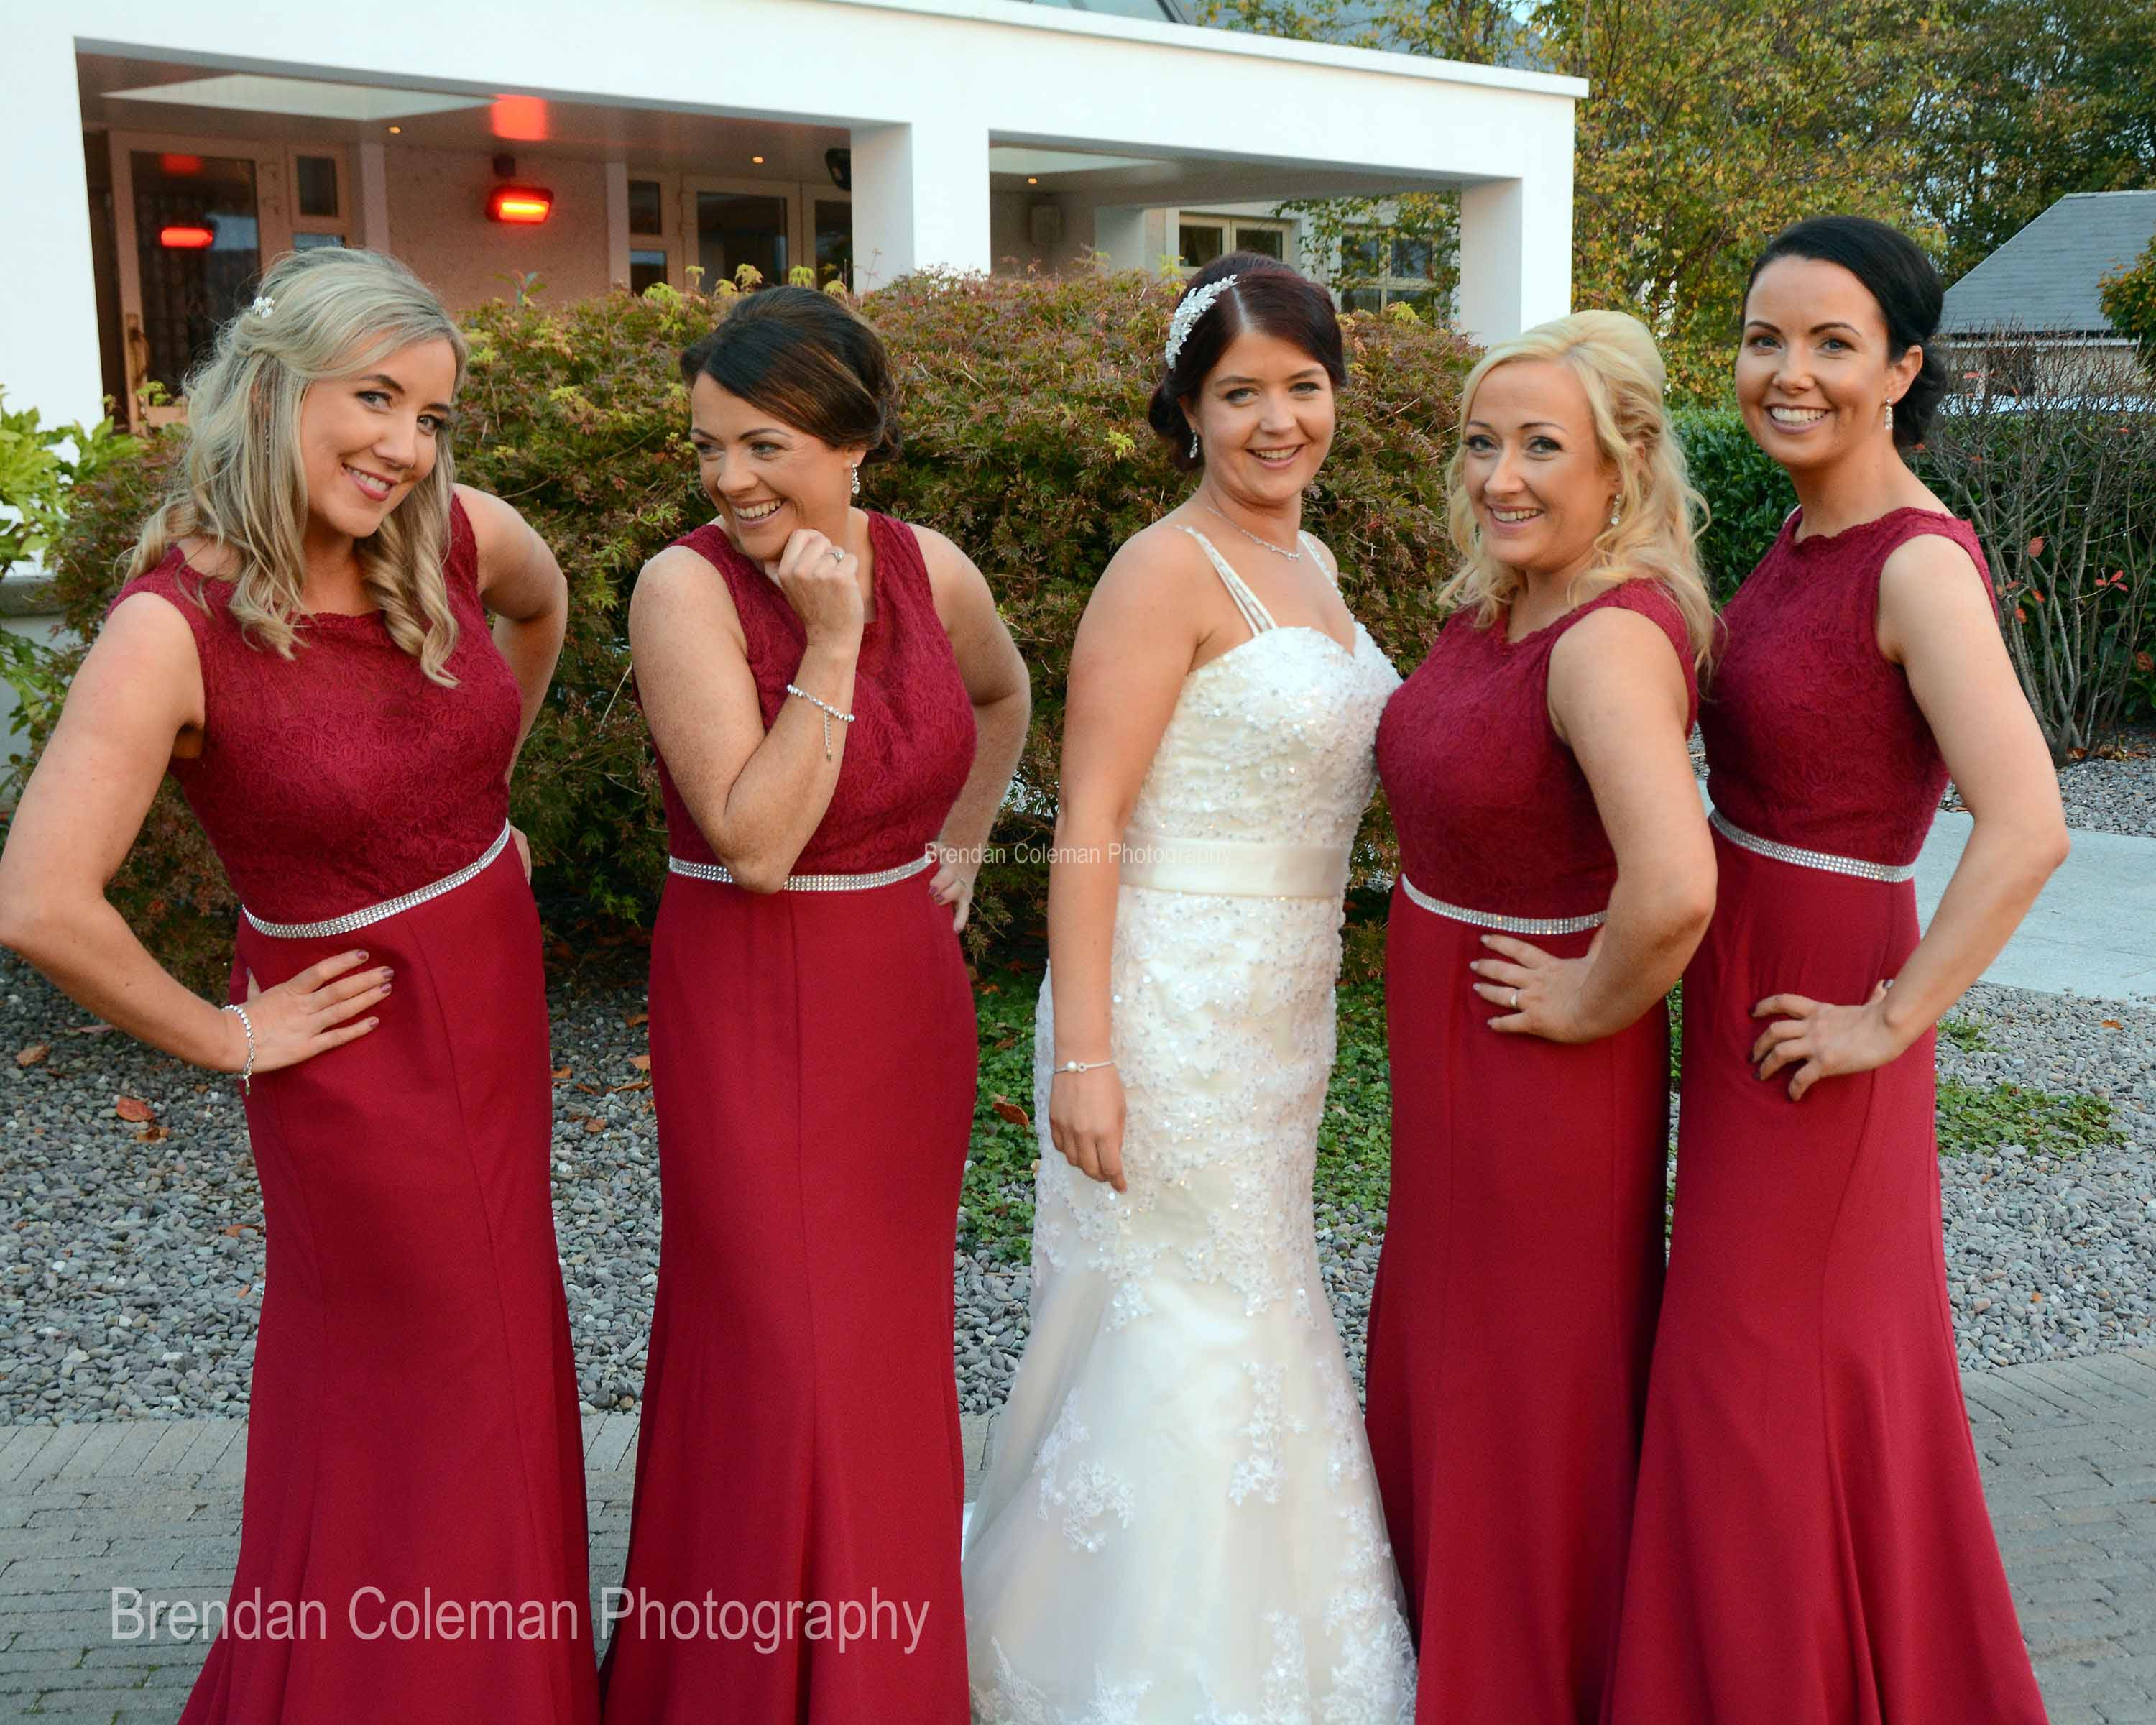 brendan Coleman Wedding Photography